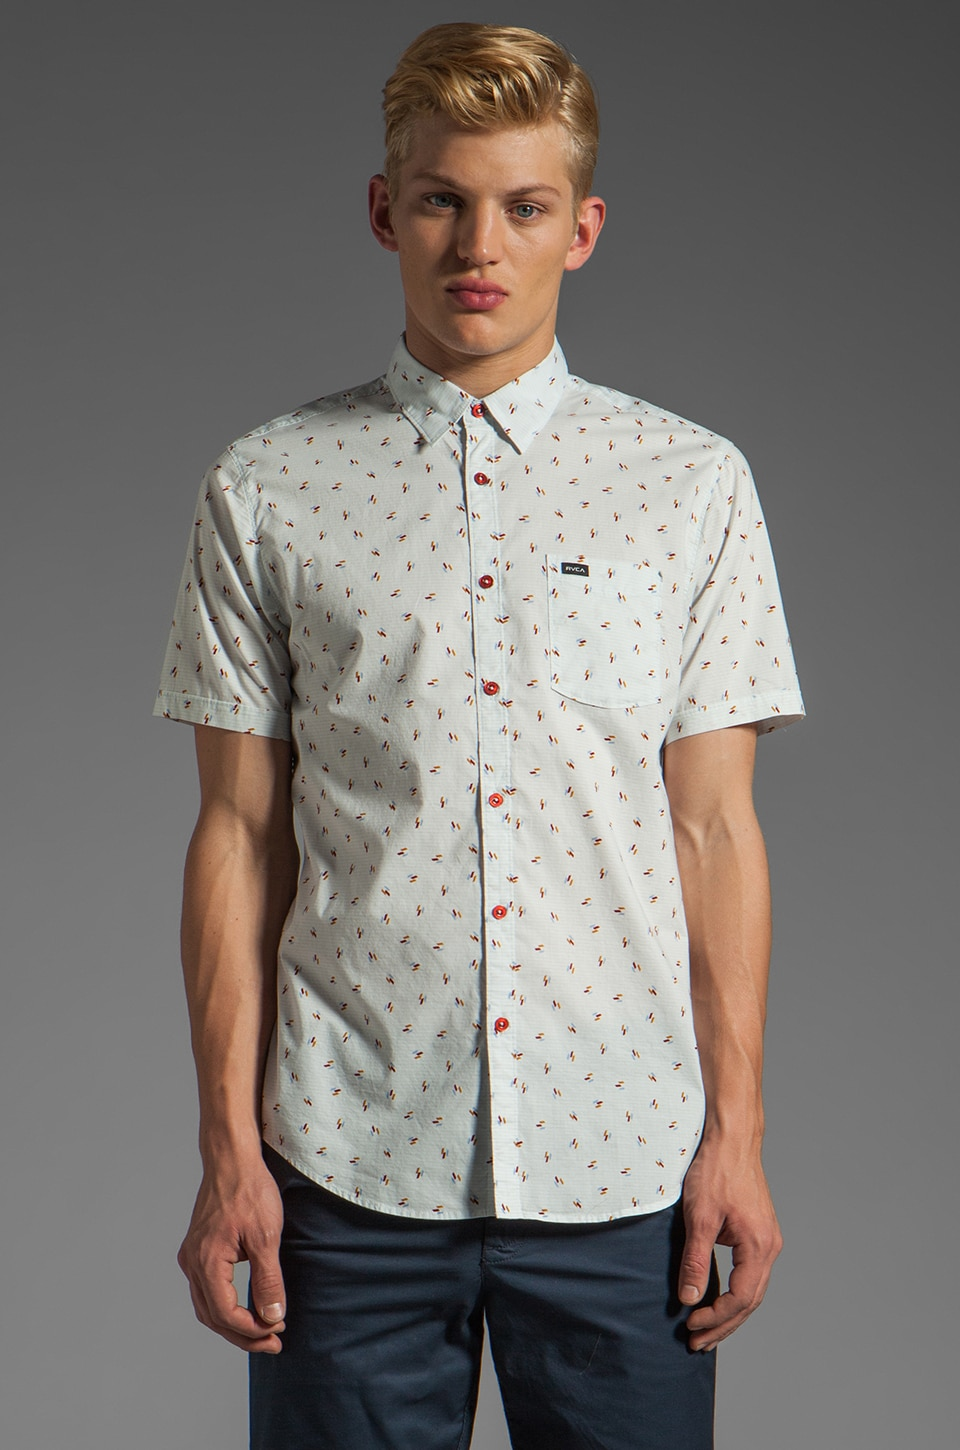 RVCA Avalon S/S Shirt in Cement